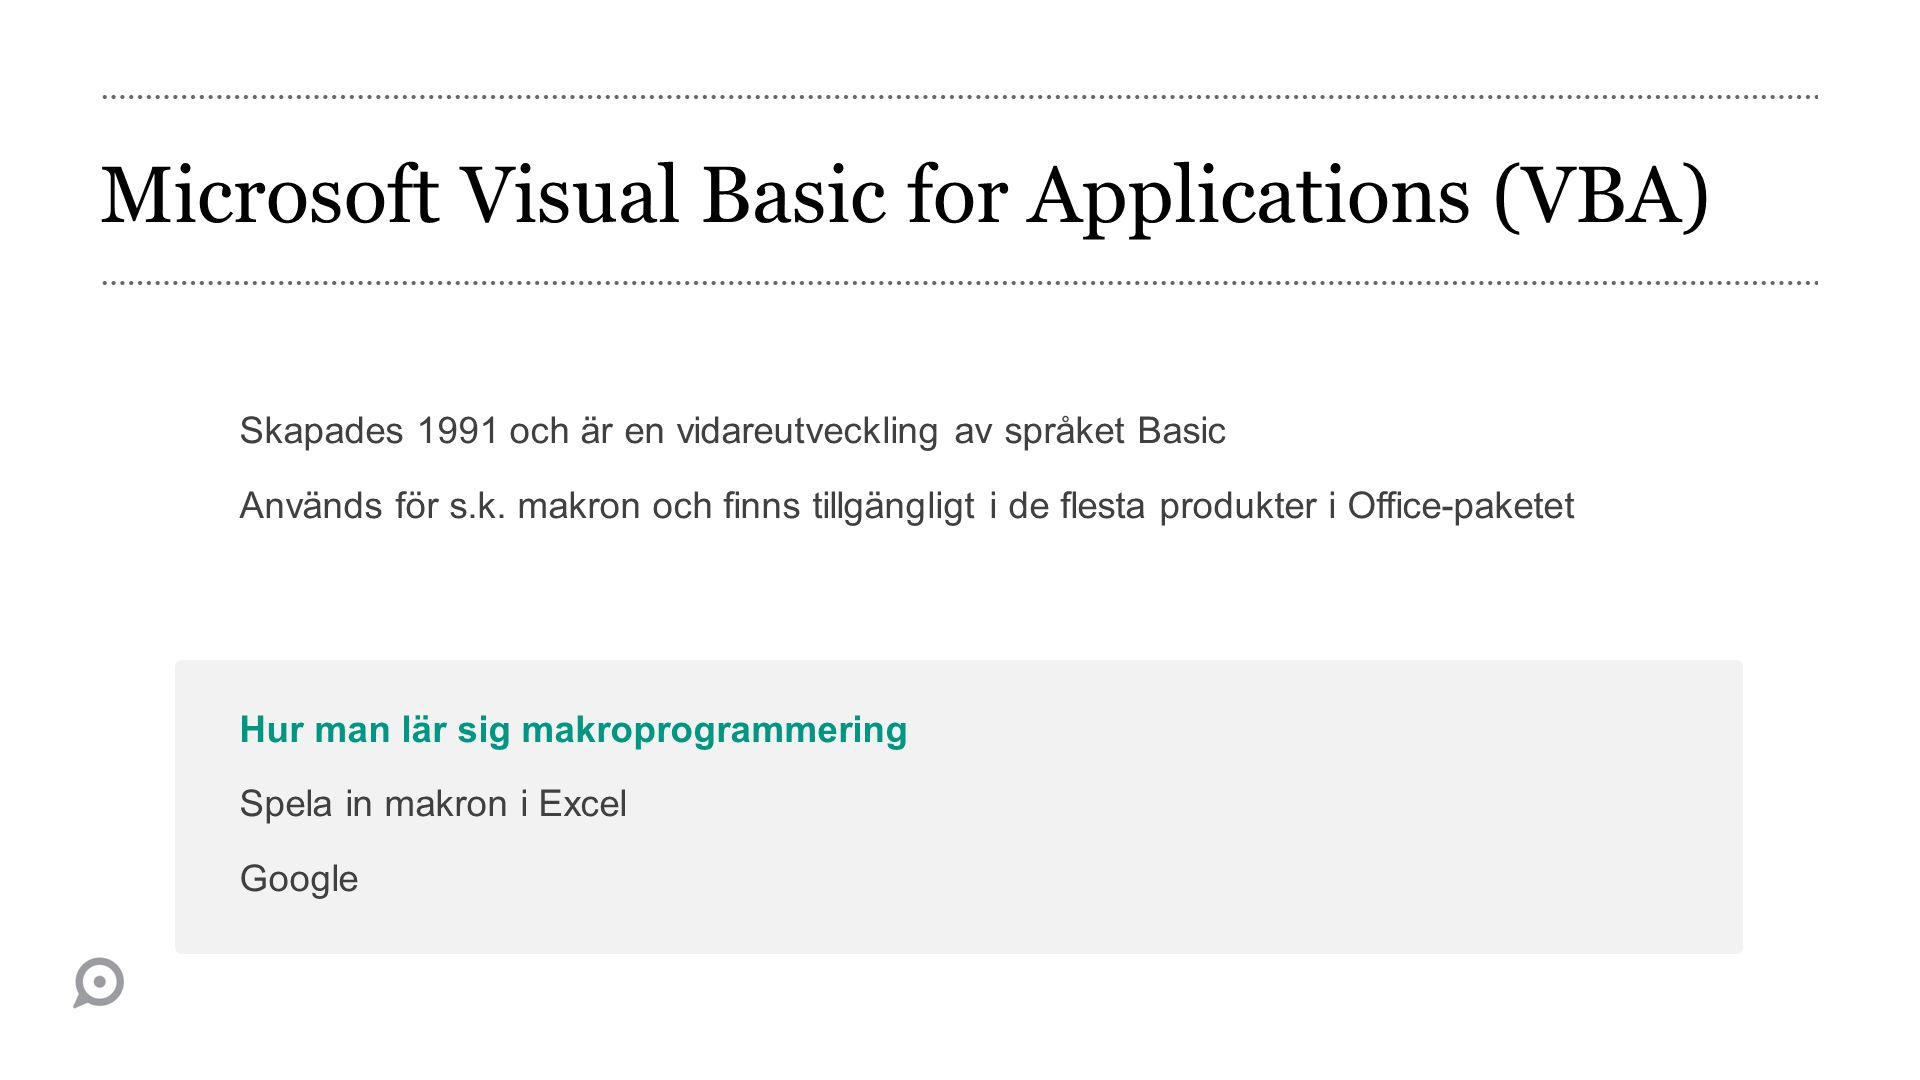 Microsoft Visual Basic for Applications (VBA)